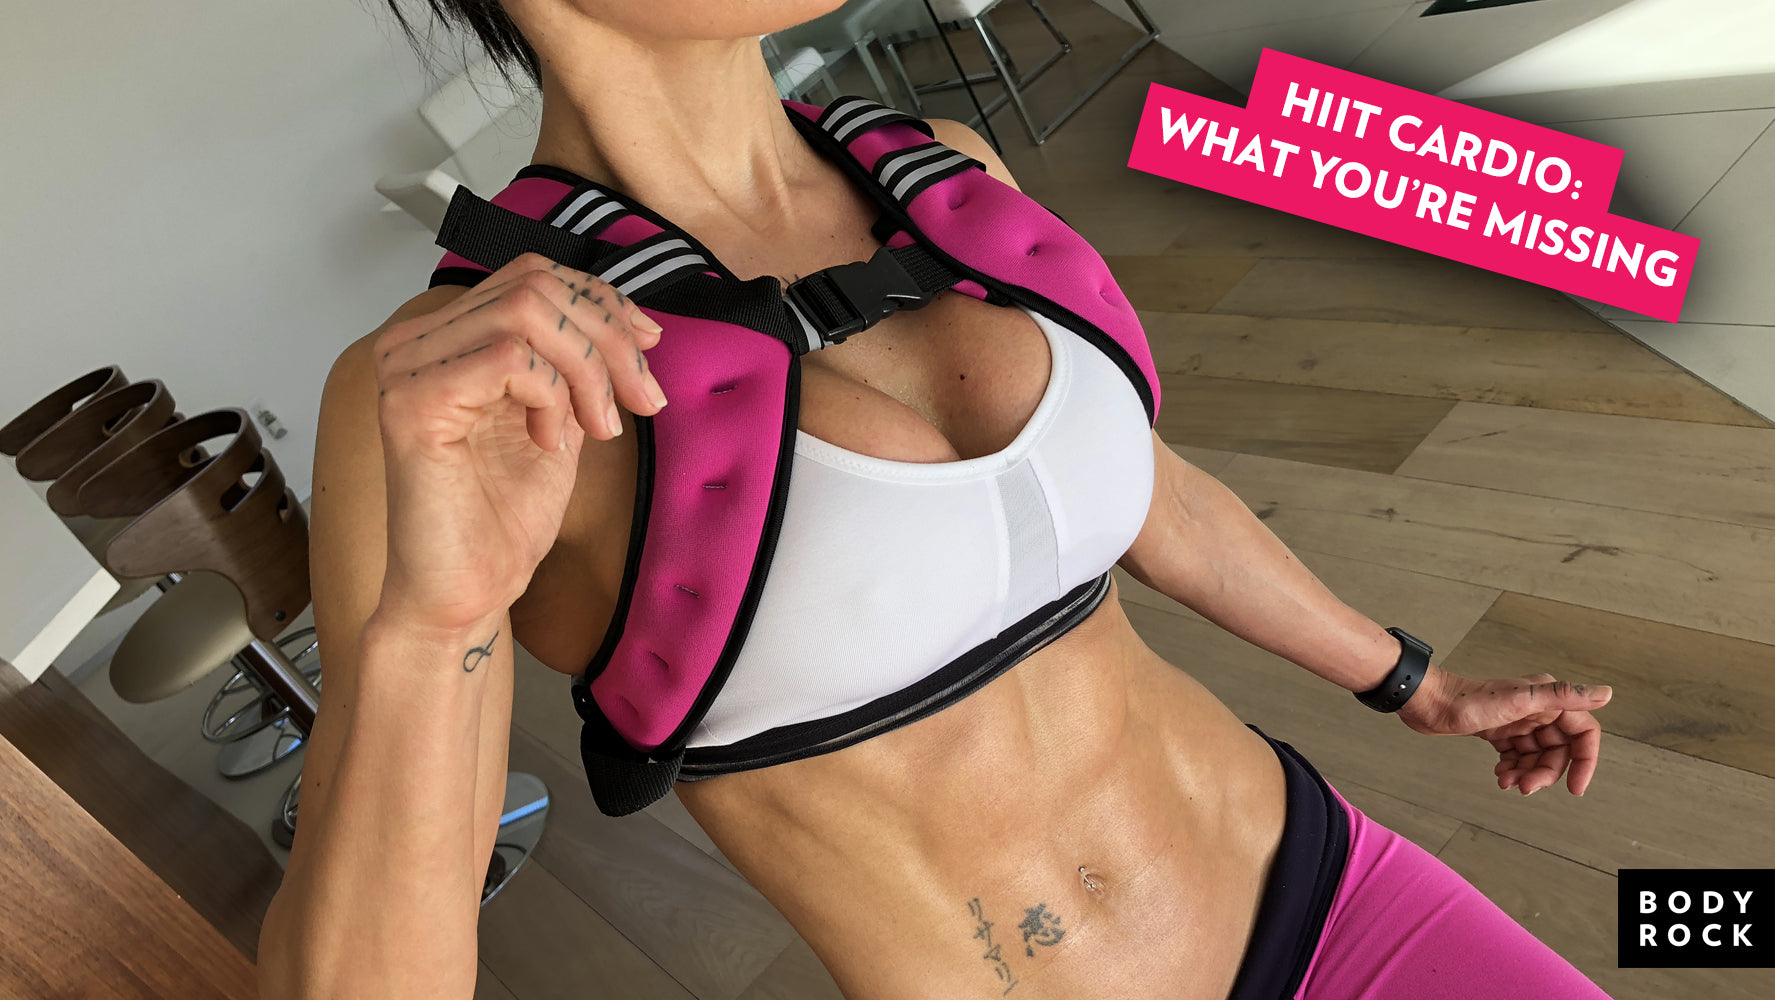 HIIT Cardio: What You're Missing